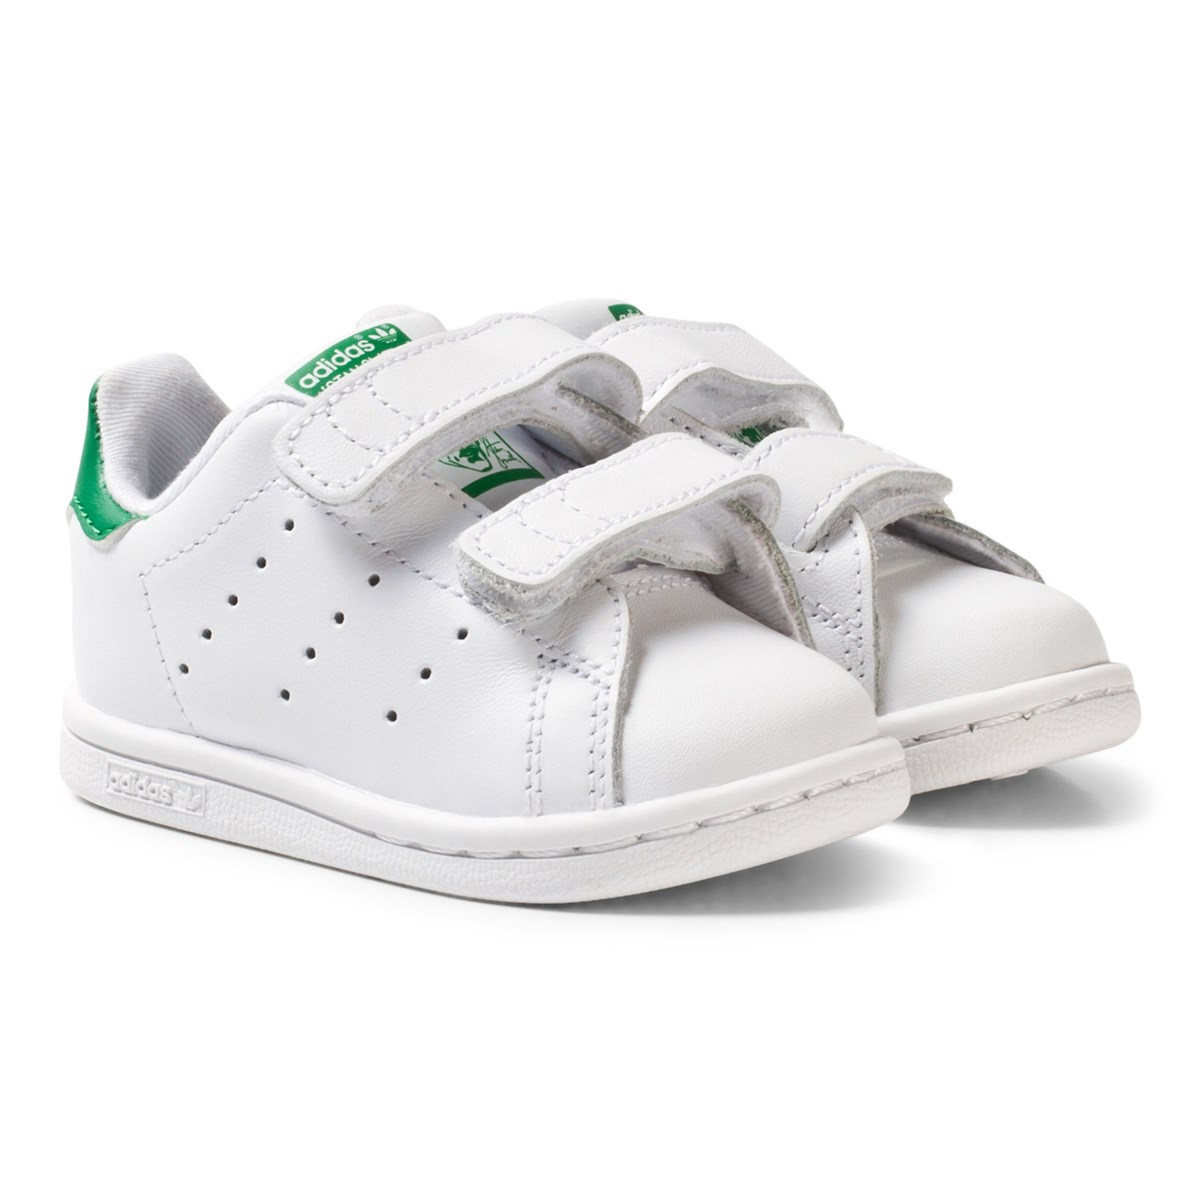 huge discount 28e3a bb743 adidas Originals - White and Green Stan Smith Infants Velcro Sneakers -  Babyshop.com